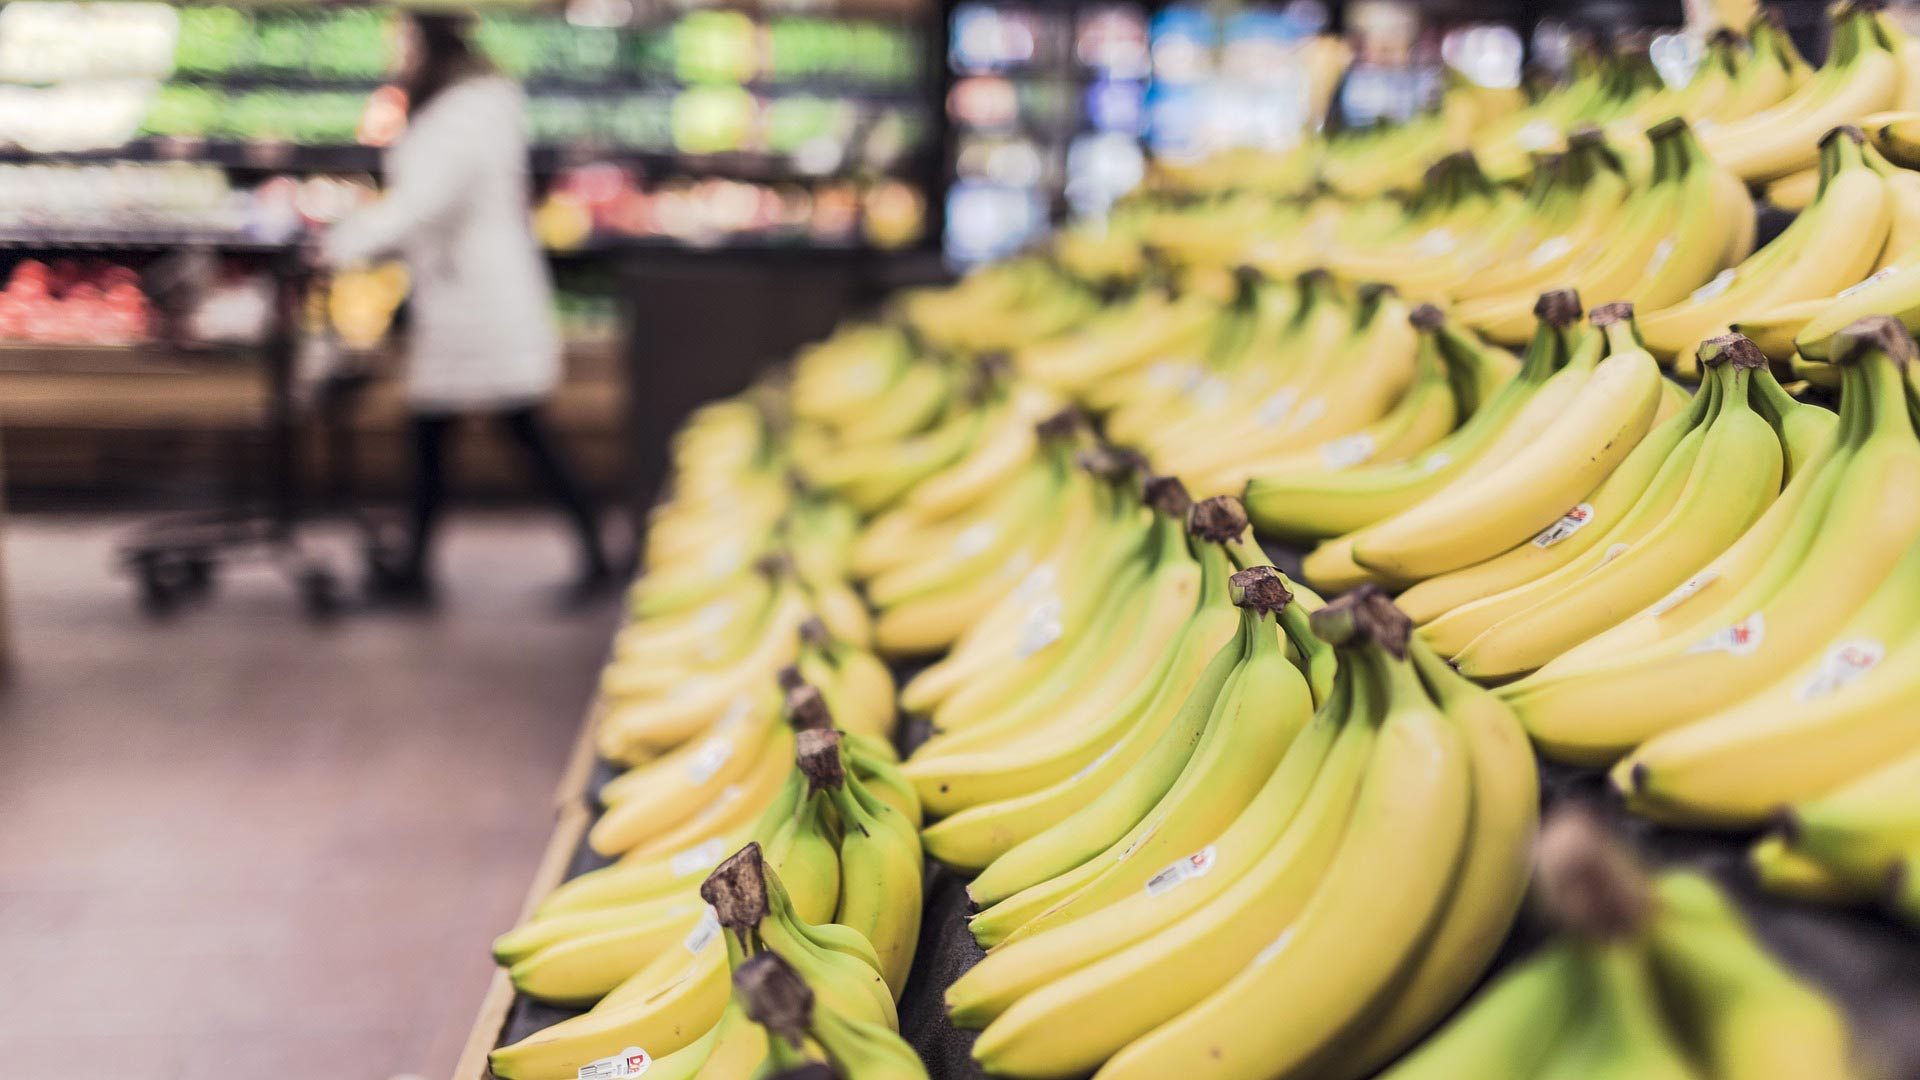 Bananas in the produce section of a grocery store.